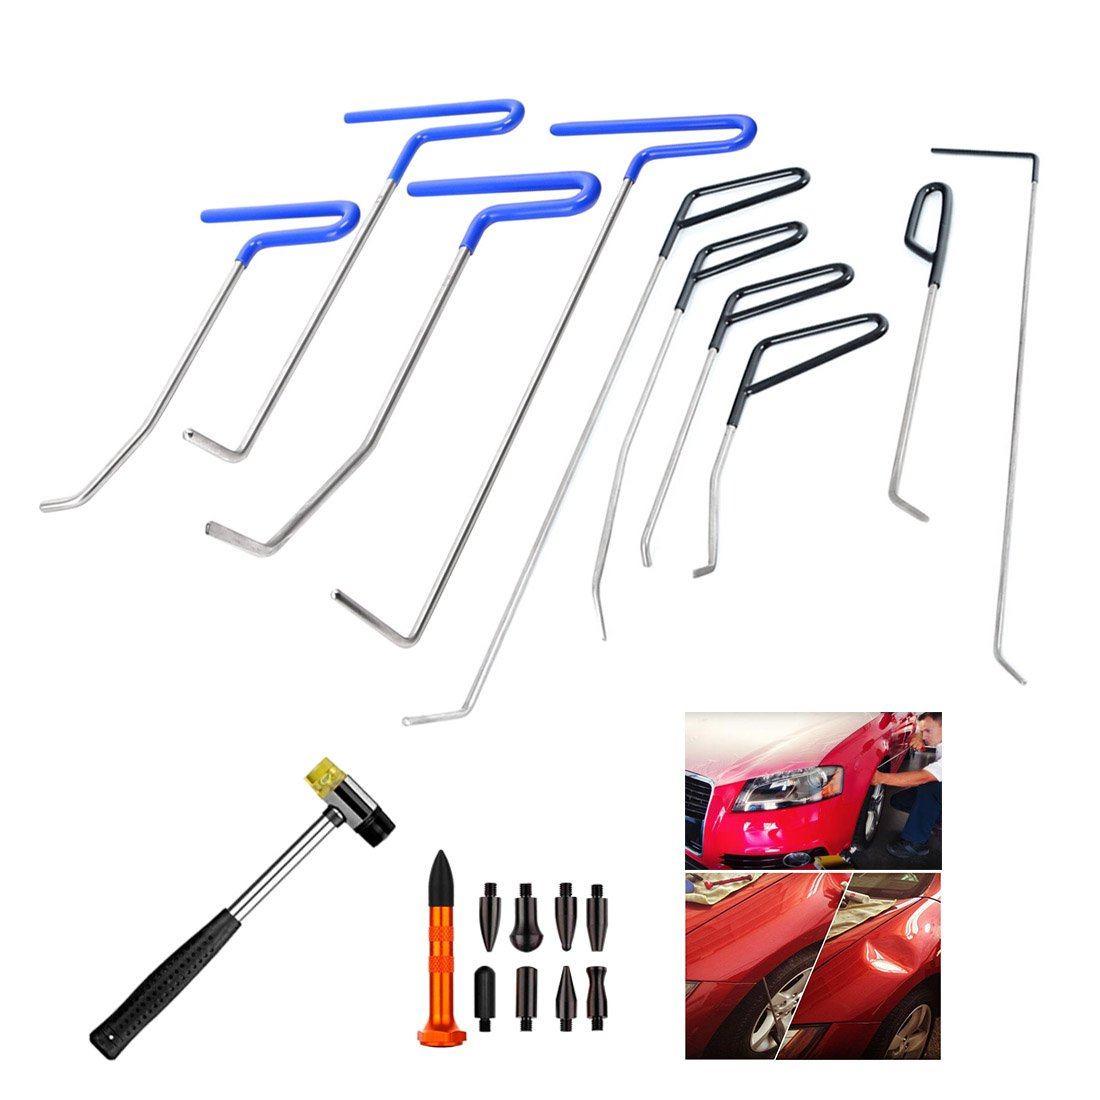 Amazon.com: WHDZ Paintless Dent Repair Rods Auto Body Removal Tools 10pcs Car Puller Hammer Tap Down: